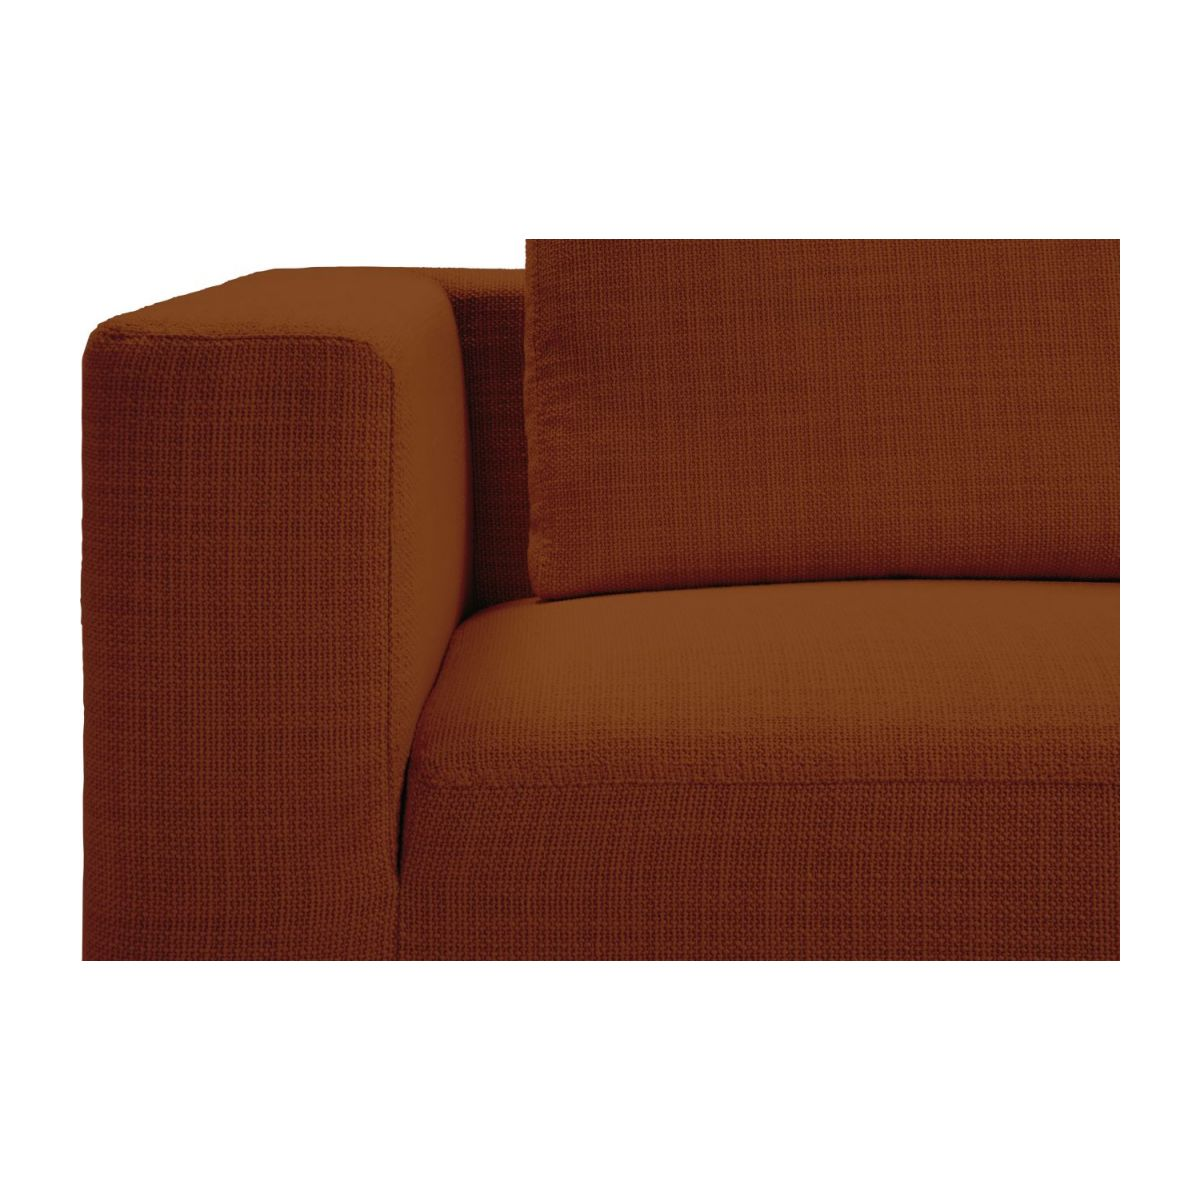 1,5 seater sofa with left armrest in Fasoli fabric, warm red rock n°6